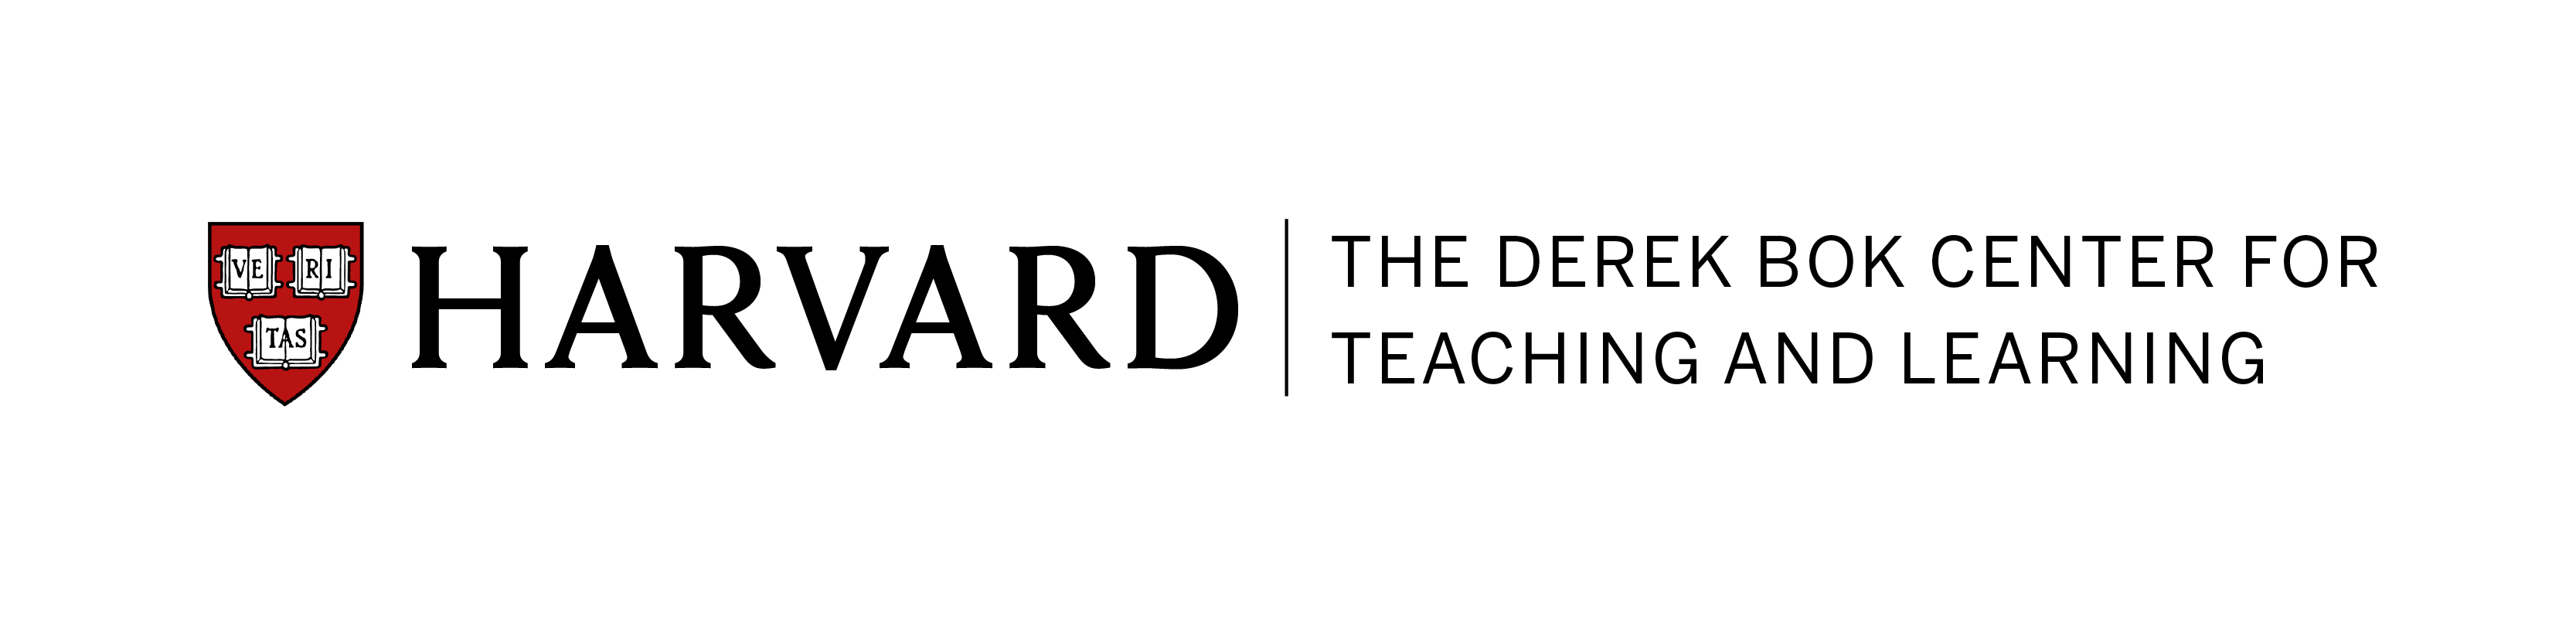 Teaching and Learning Strategies for Higher Education online short course by Harvard's Bok Center for Teaching and Learning